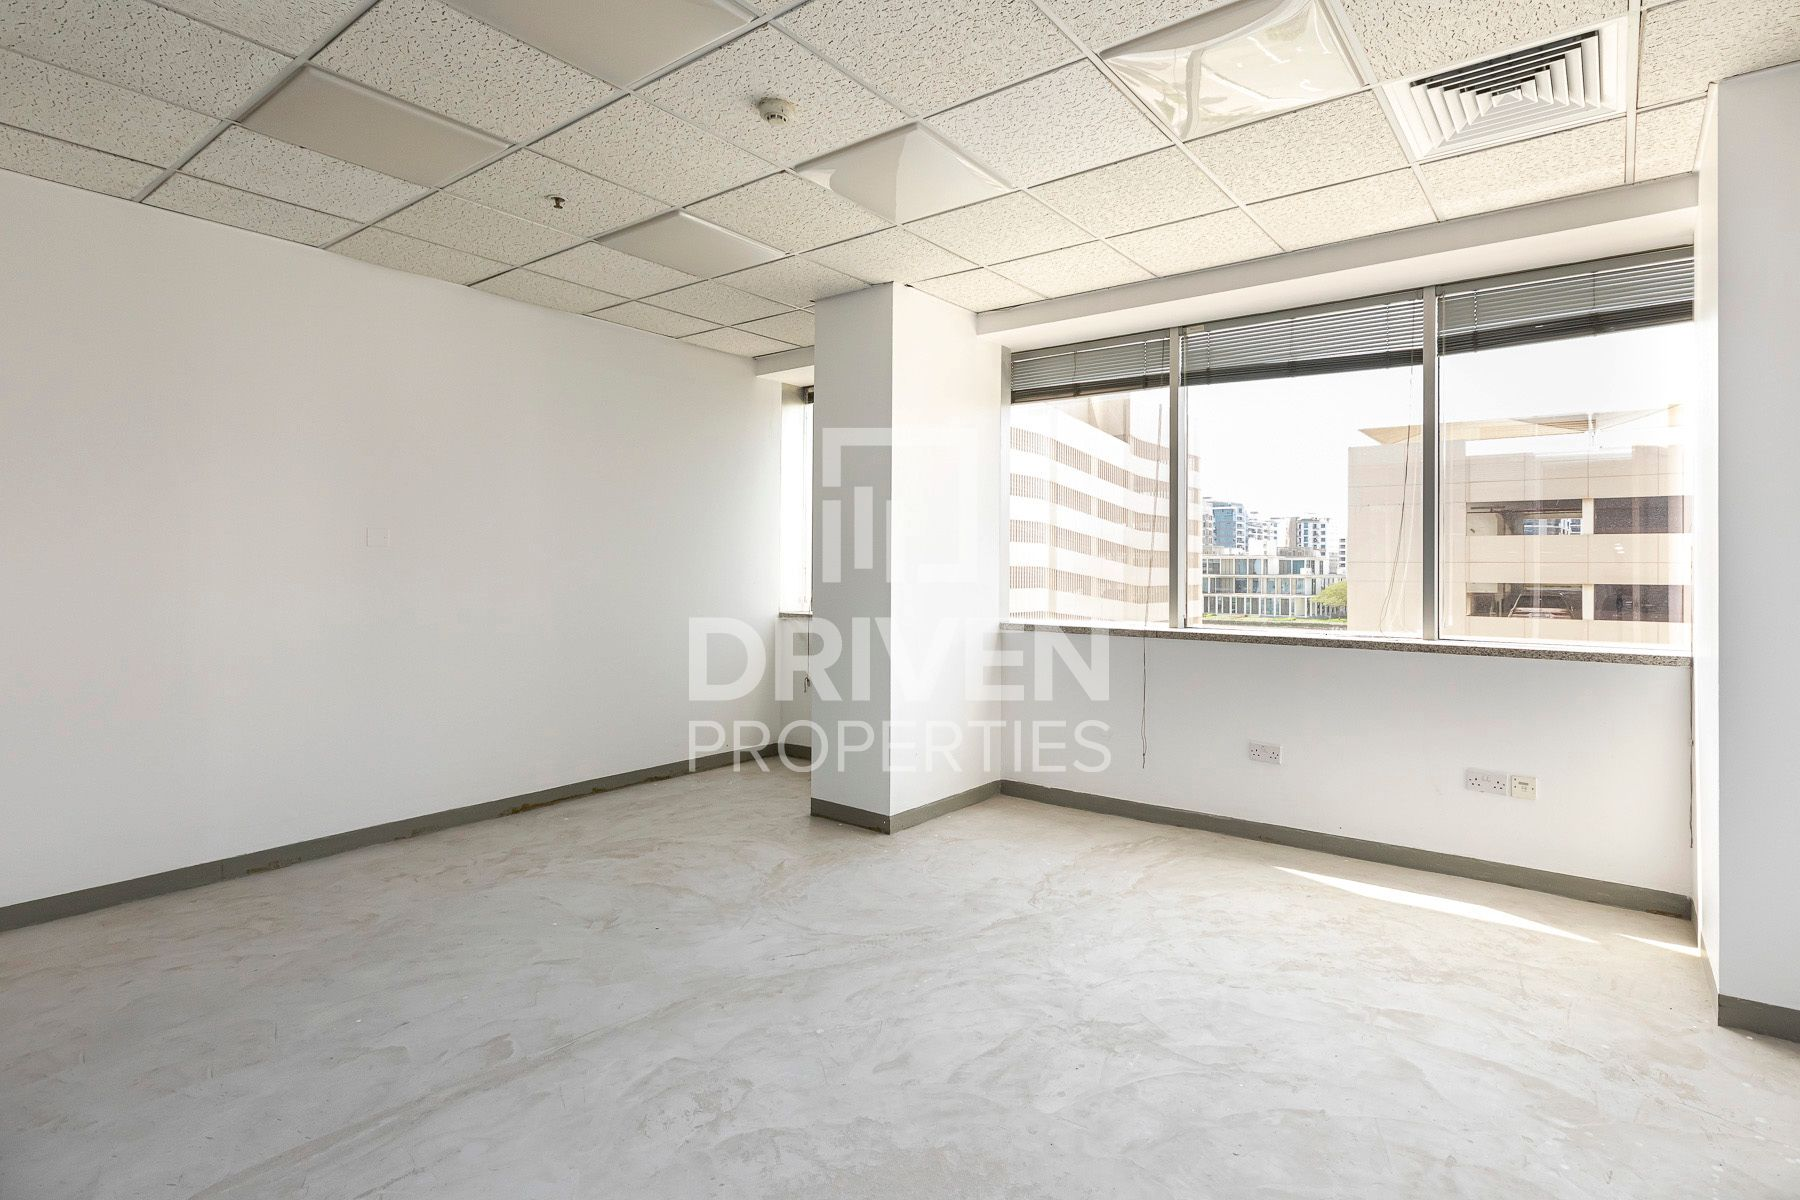 Office for Rent in Al Moosa Tower 1 - Sheikh Zayed Road